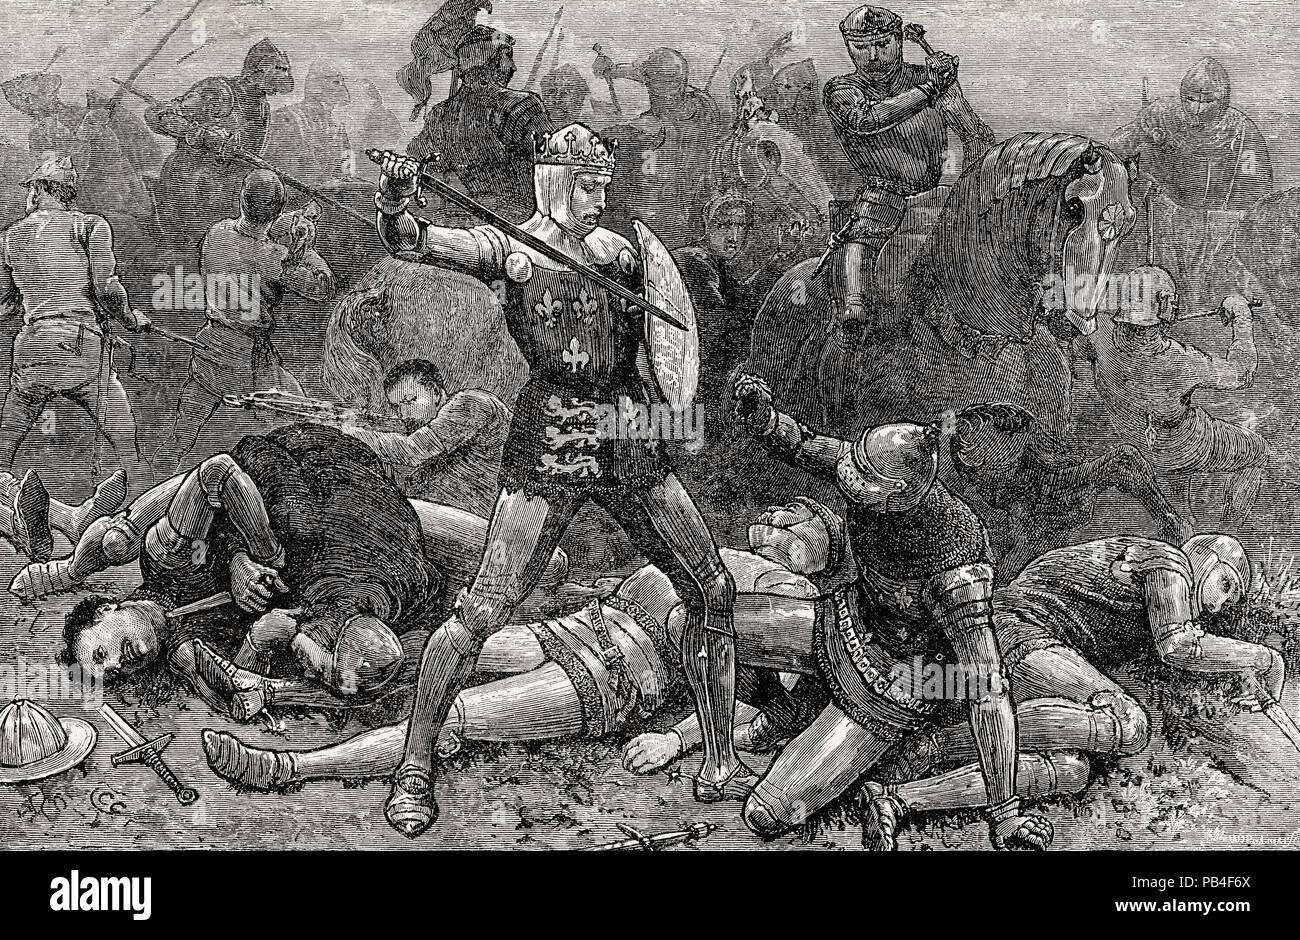 King Henry V and the Duke D'Alençon at the Battle of Agincourt on 25th October 1415, Hundred Years War, From British Battles on Land and Sea, by James - Stock Image